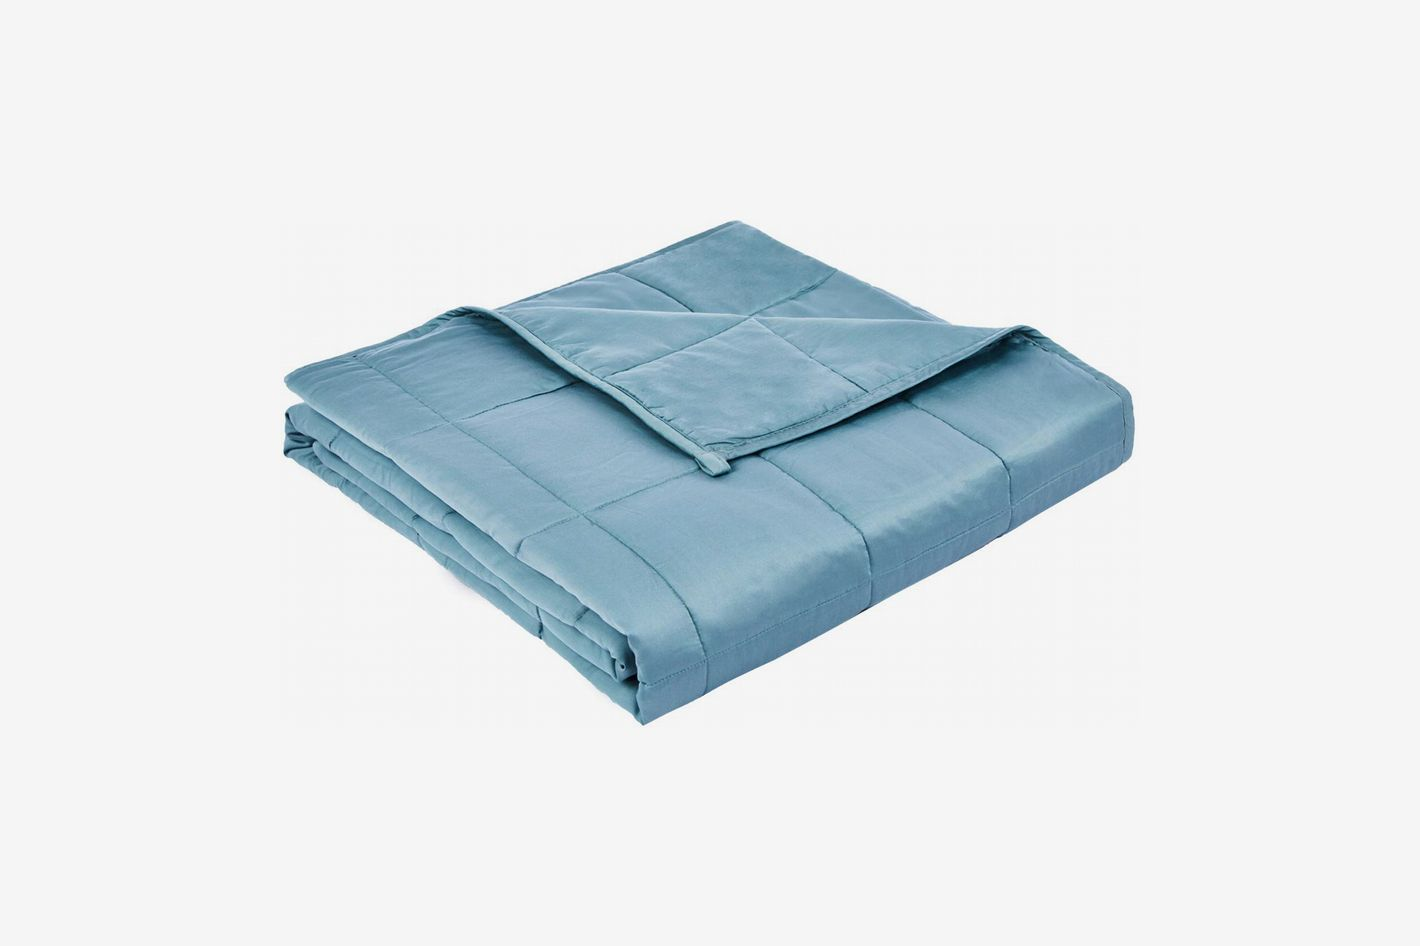 YnM Cooling Weighted Blanket